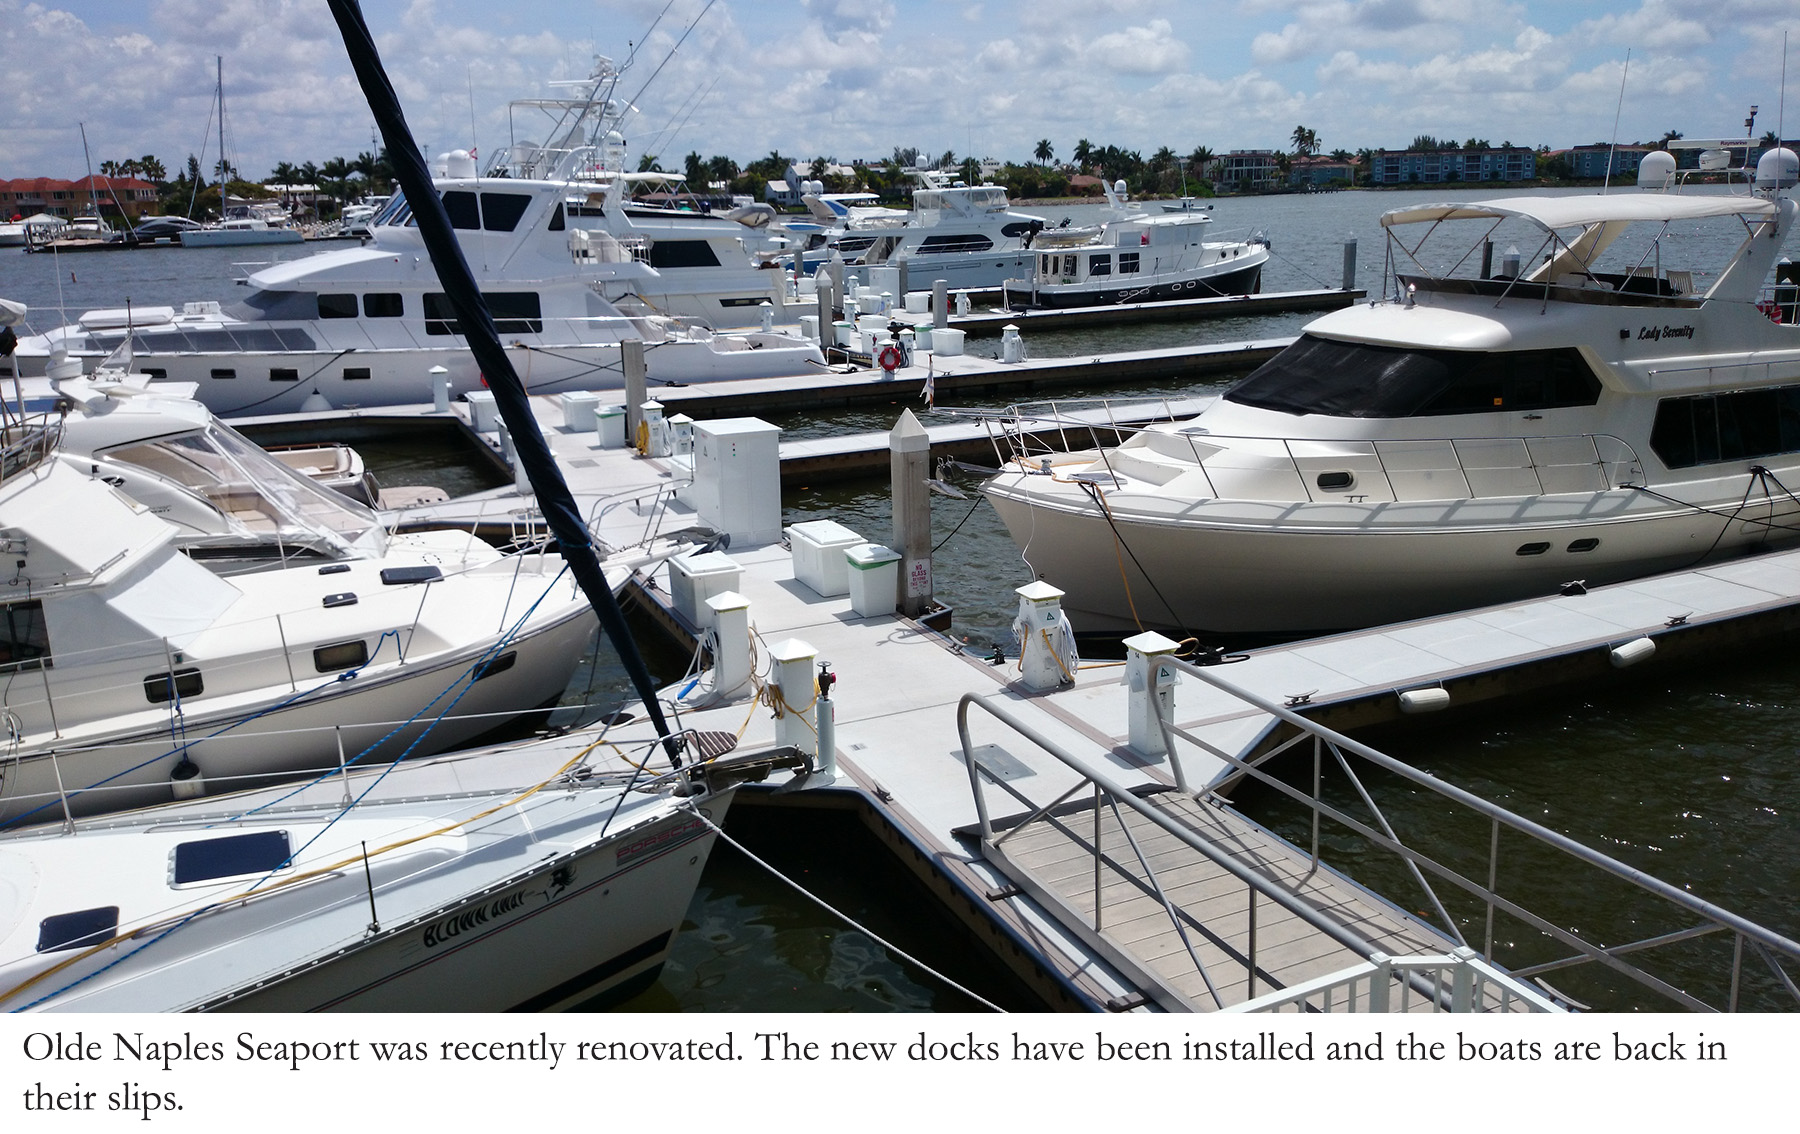 Concrete floating docks were recently install at Olde Naples Seaport